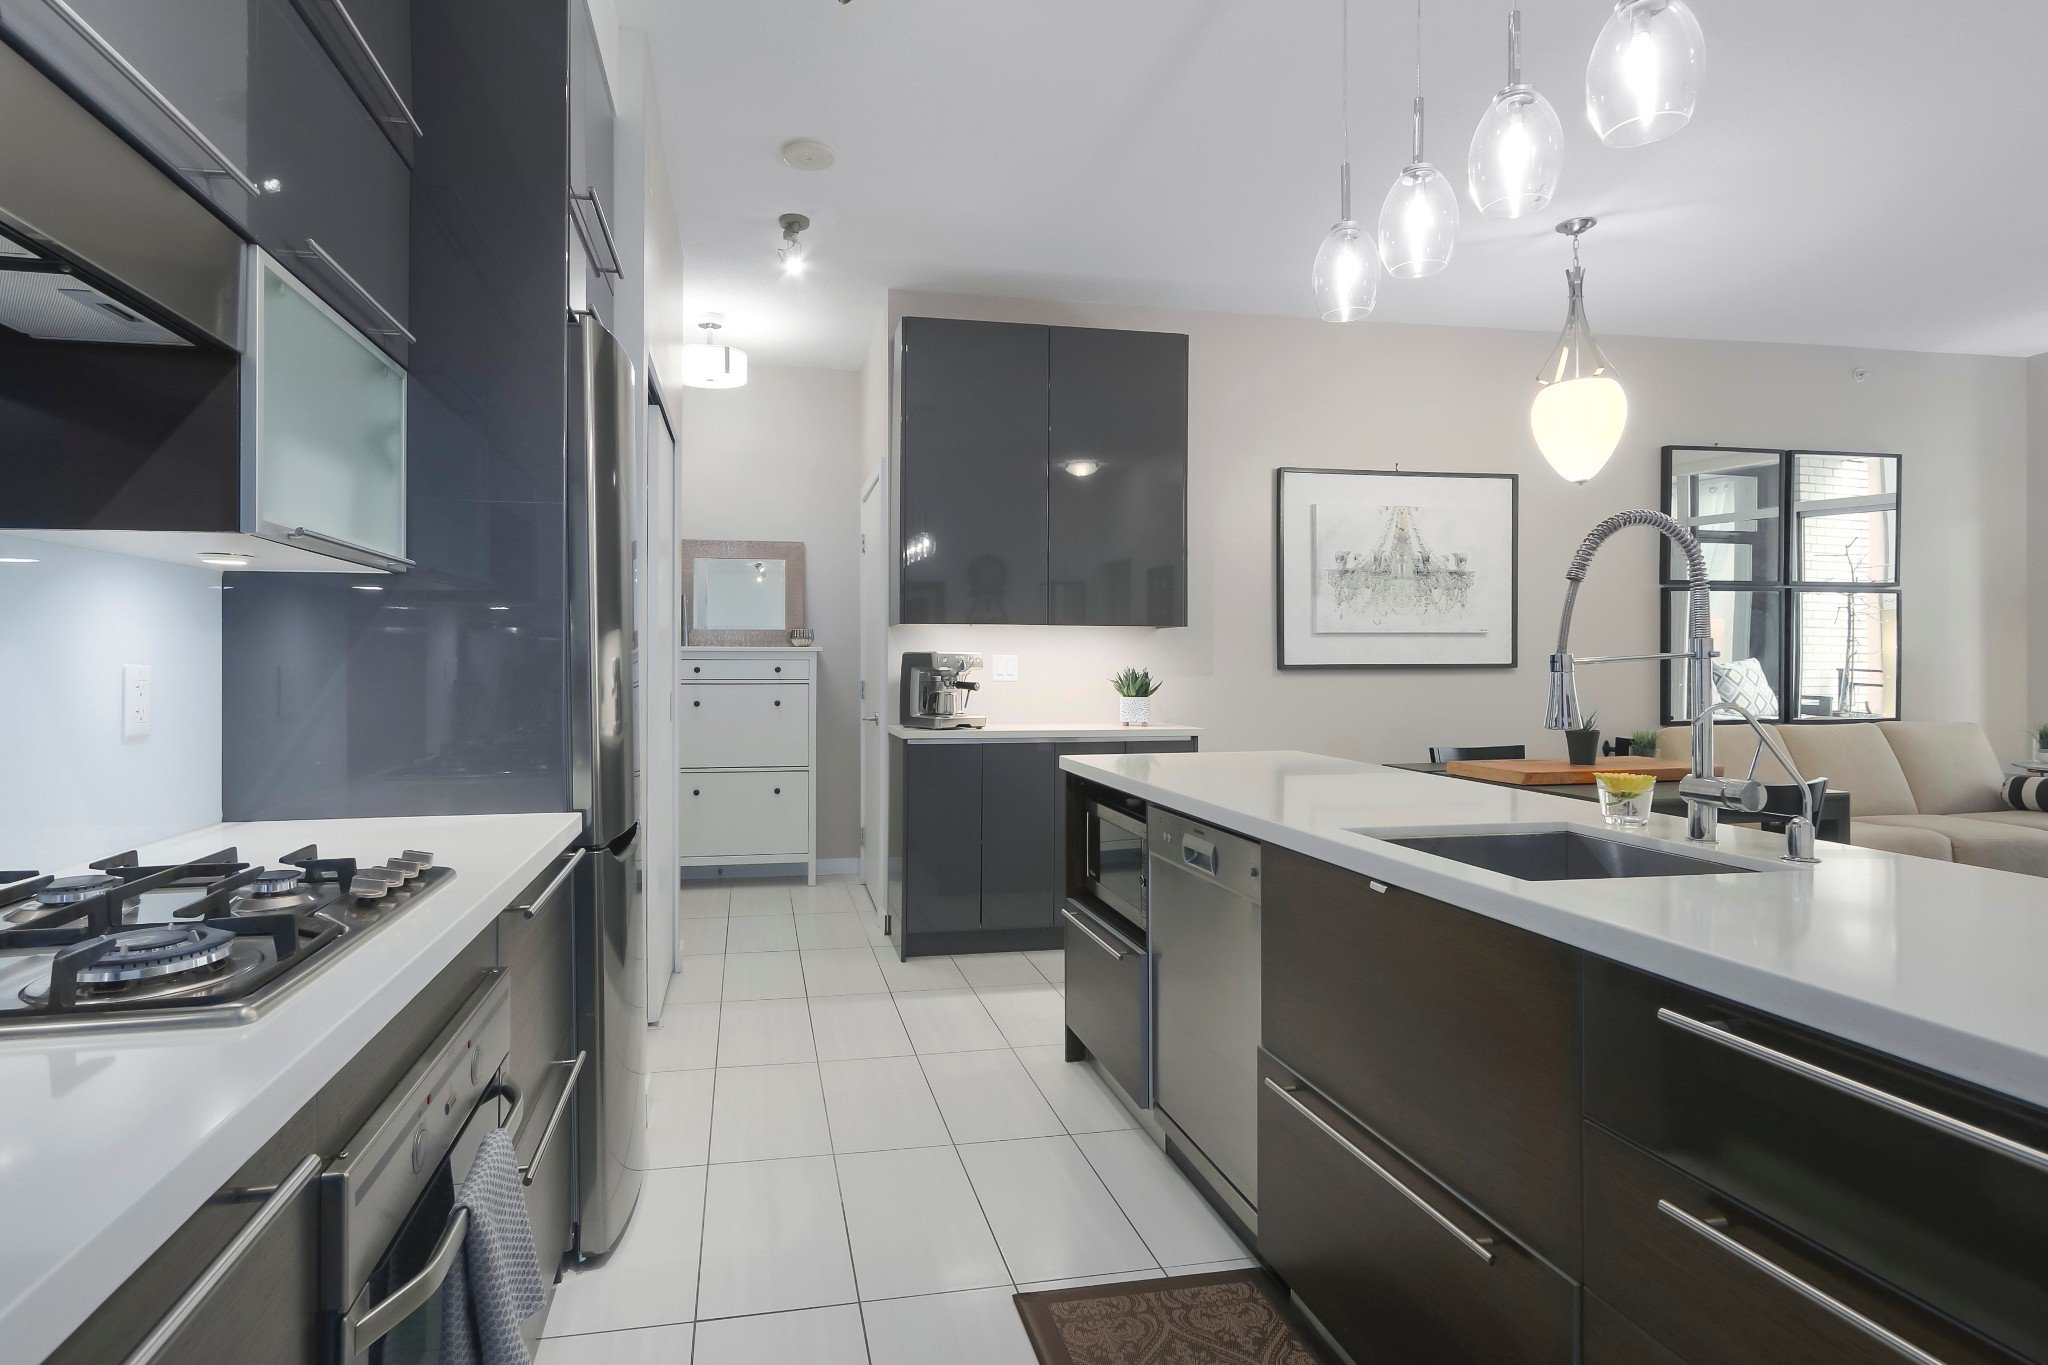 Main Photo: 306 1252 Hornby Street in Vancouver: Downtown Condo for sale (Vancouver West)  : MLS®# R2360445